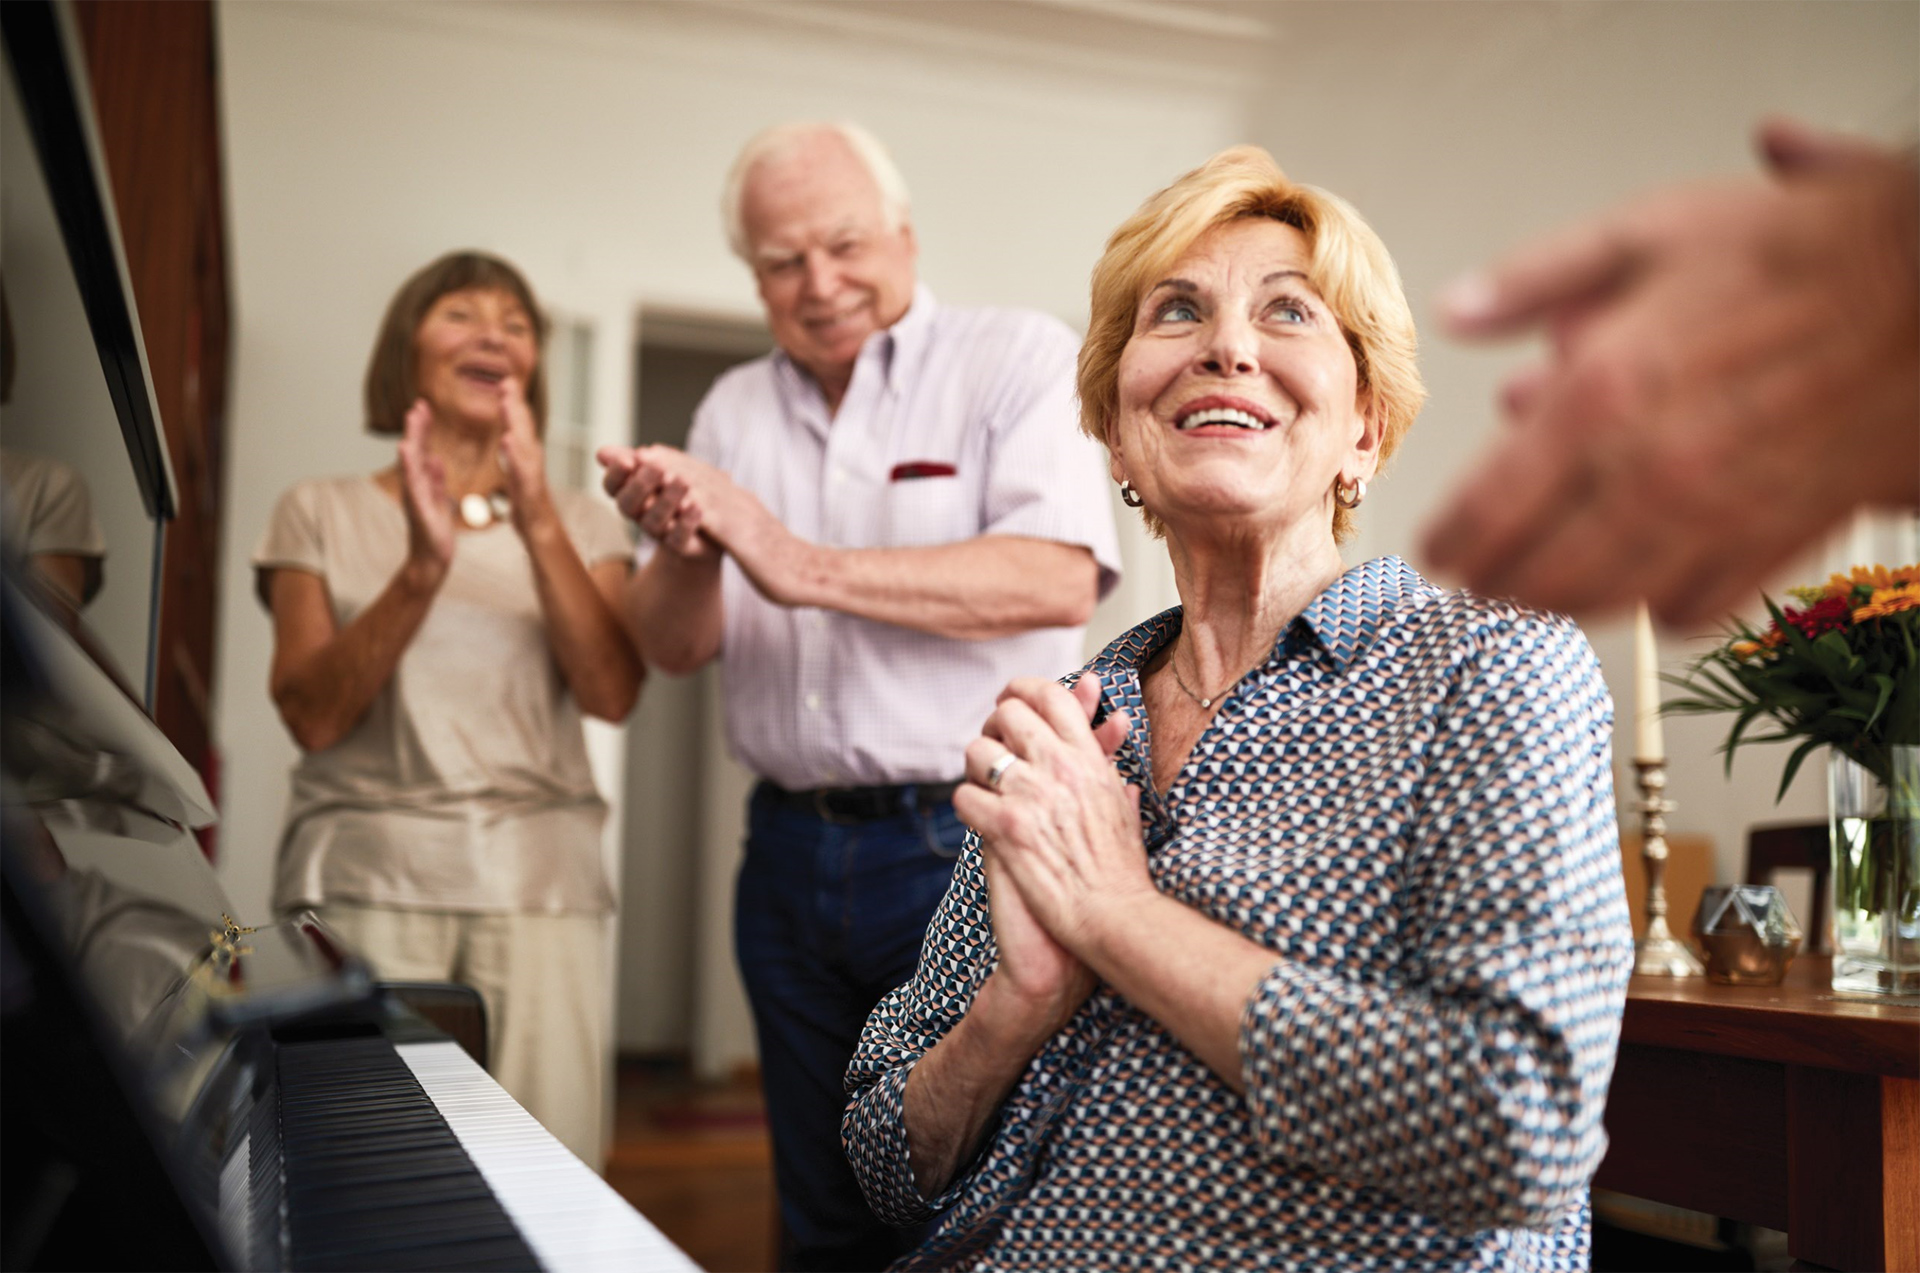 A female Aviva resident smiles with her hands clasped as other residenrs applaud her piano playing